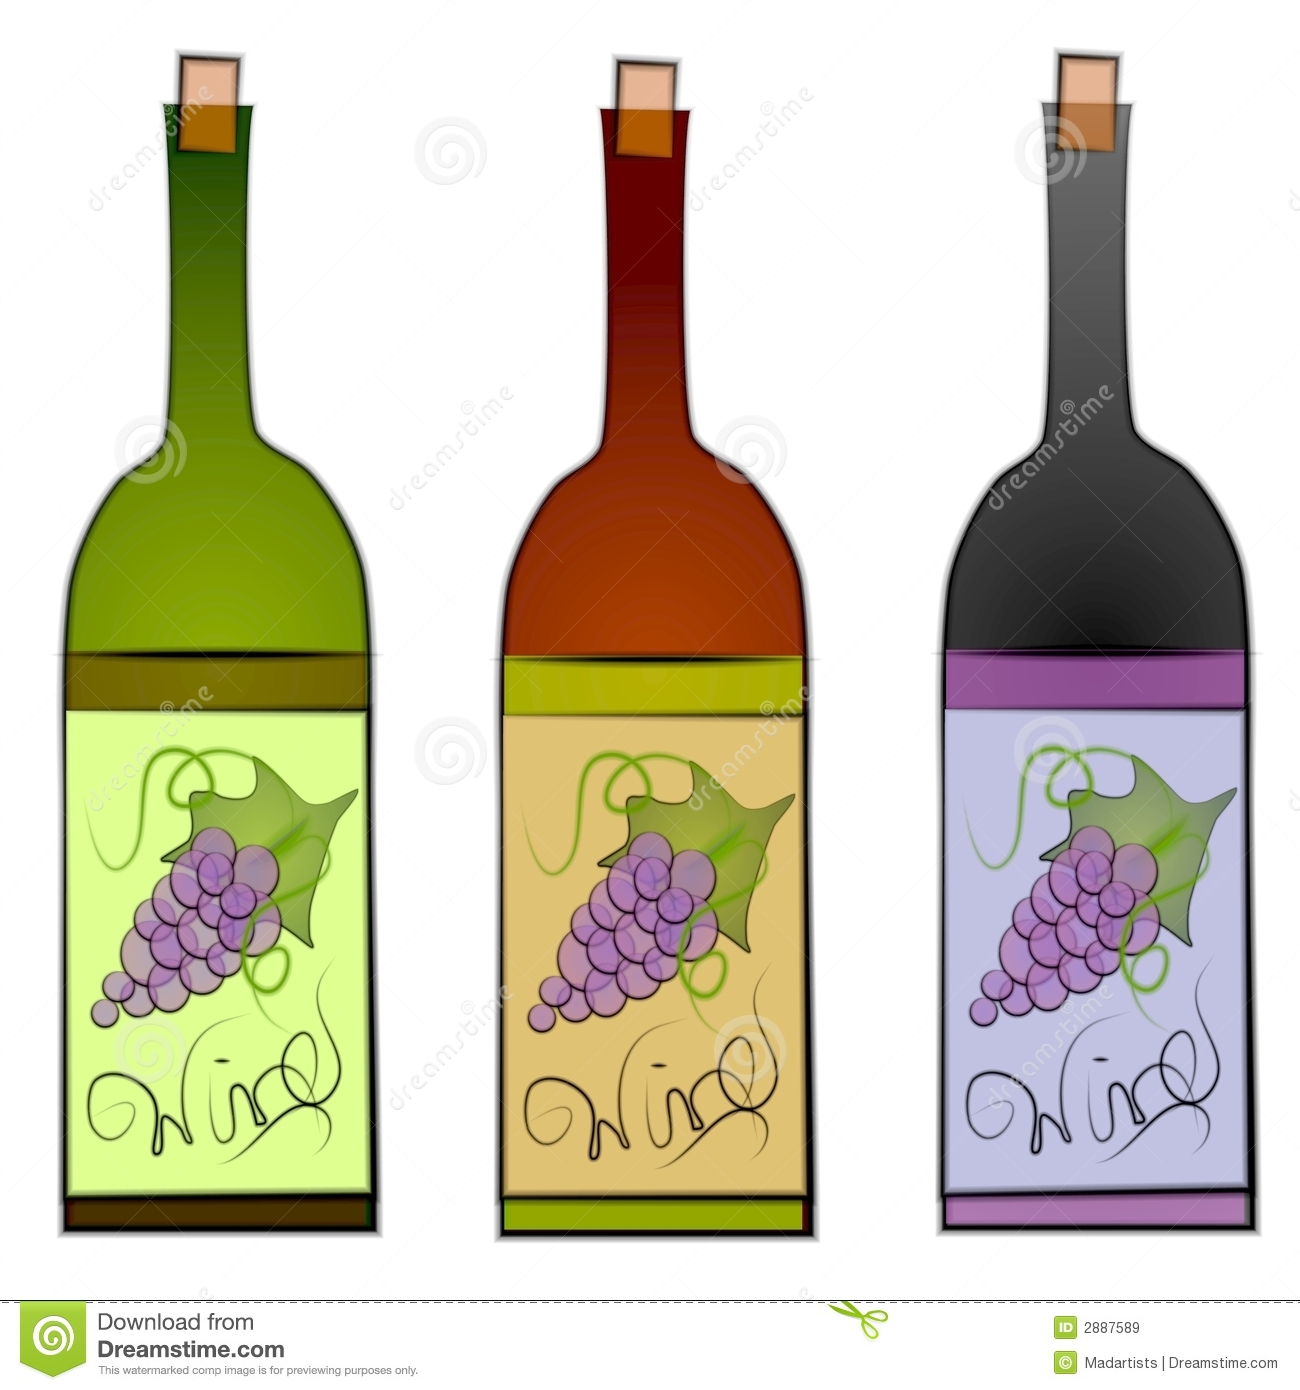 Clip Art Illustration Of A Collection Of-Clip Art Illustration Of A Collection Of 3 Wine Bottles In Green Red-6